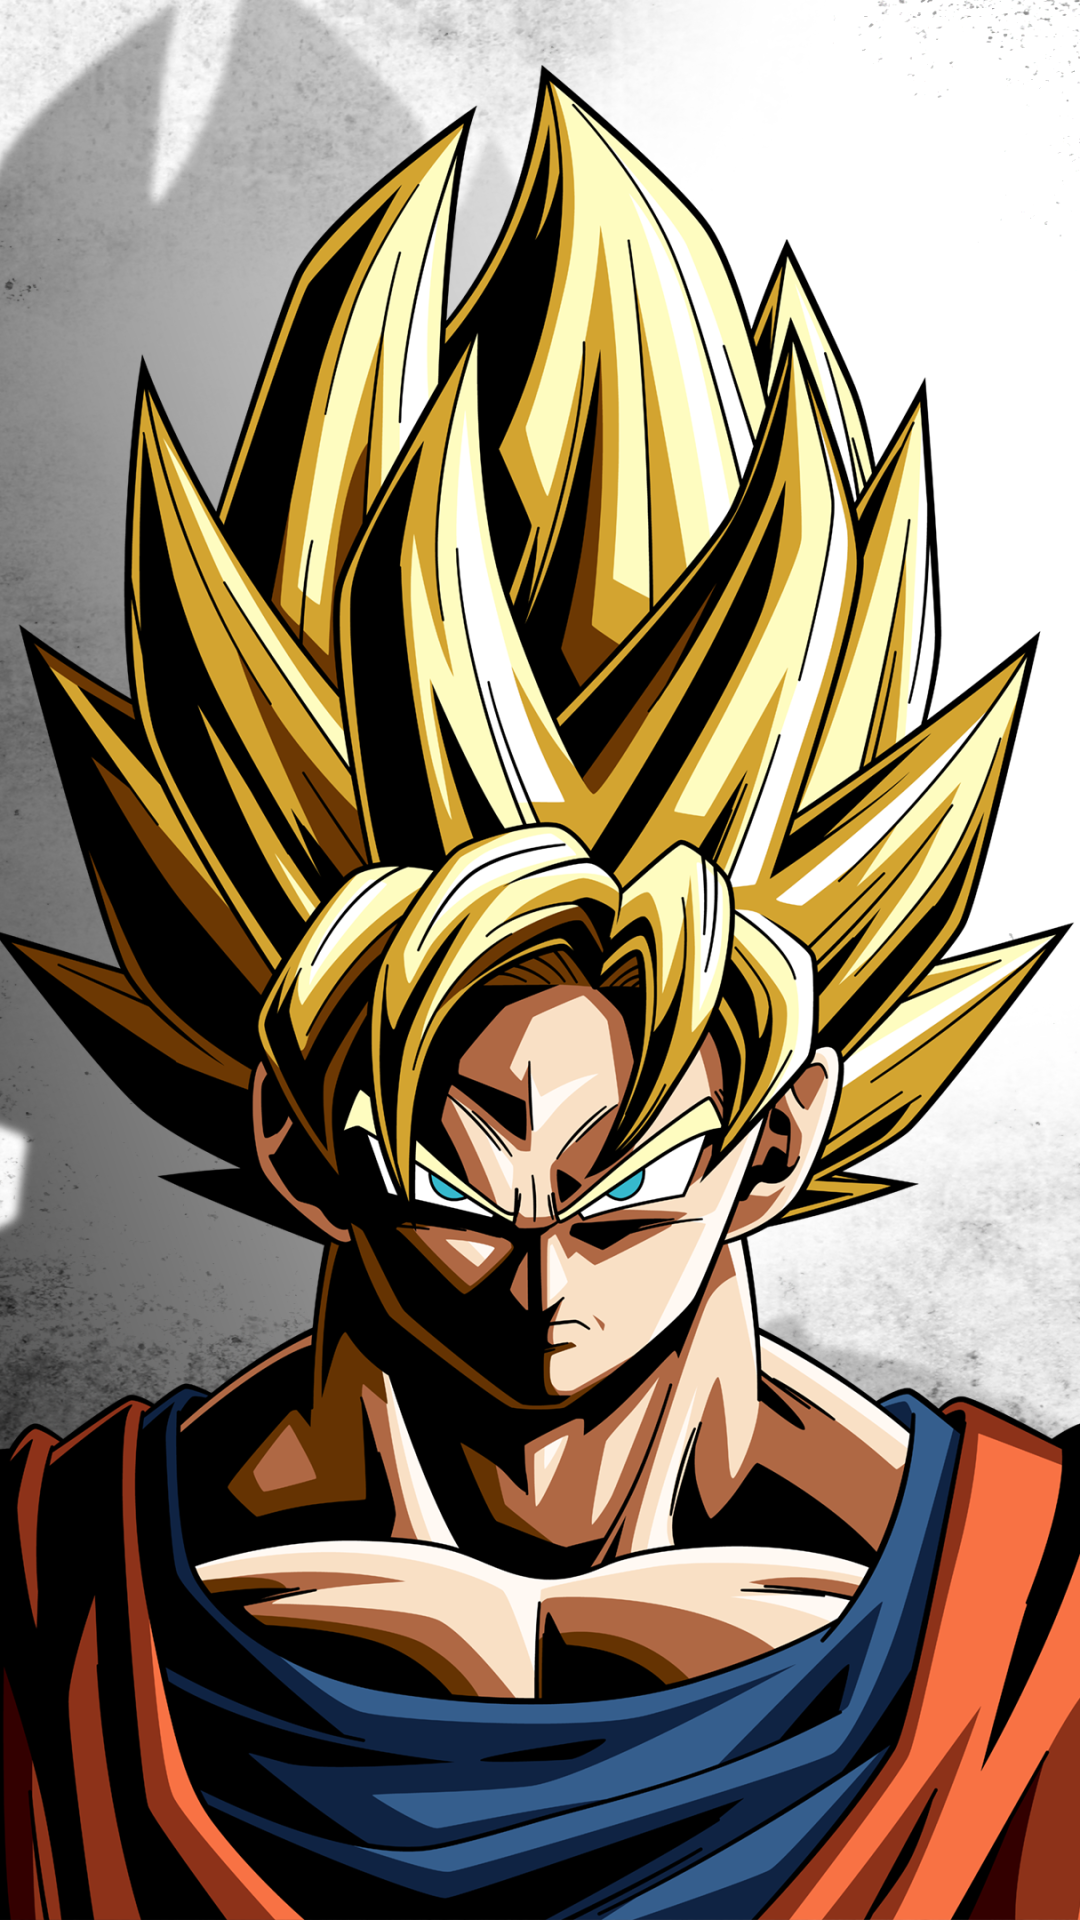 Animedragon ball z 1080x1920 wallpaper id 641886 mobile abyss wallpaper 641886 thecheapjerseys Choice Image